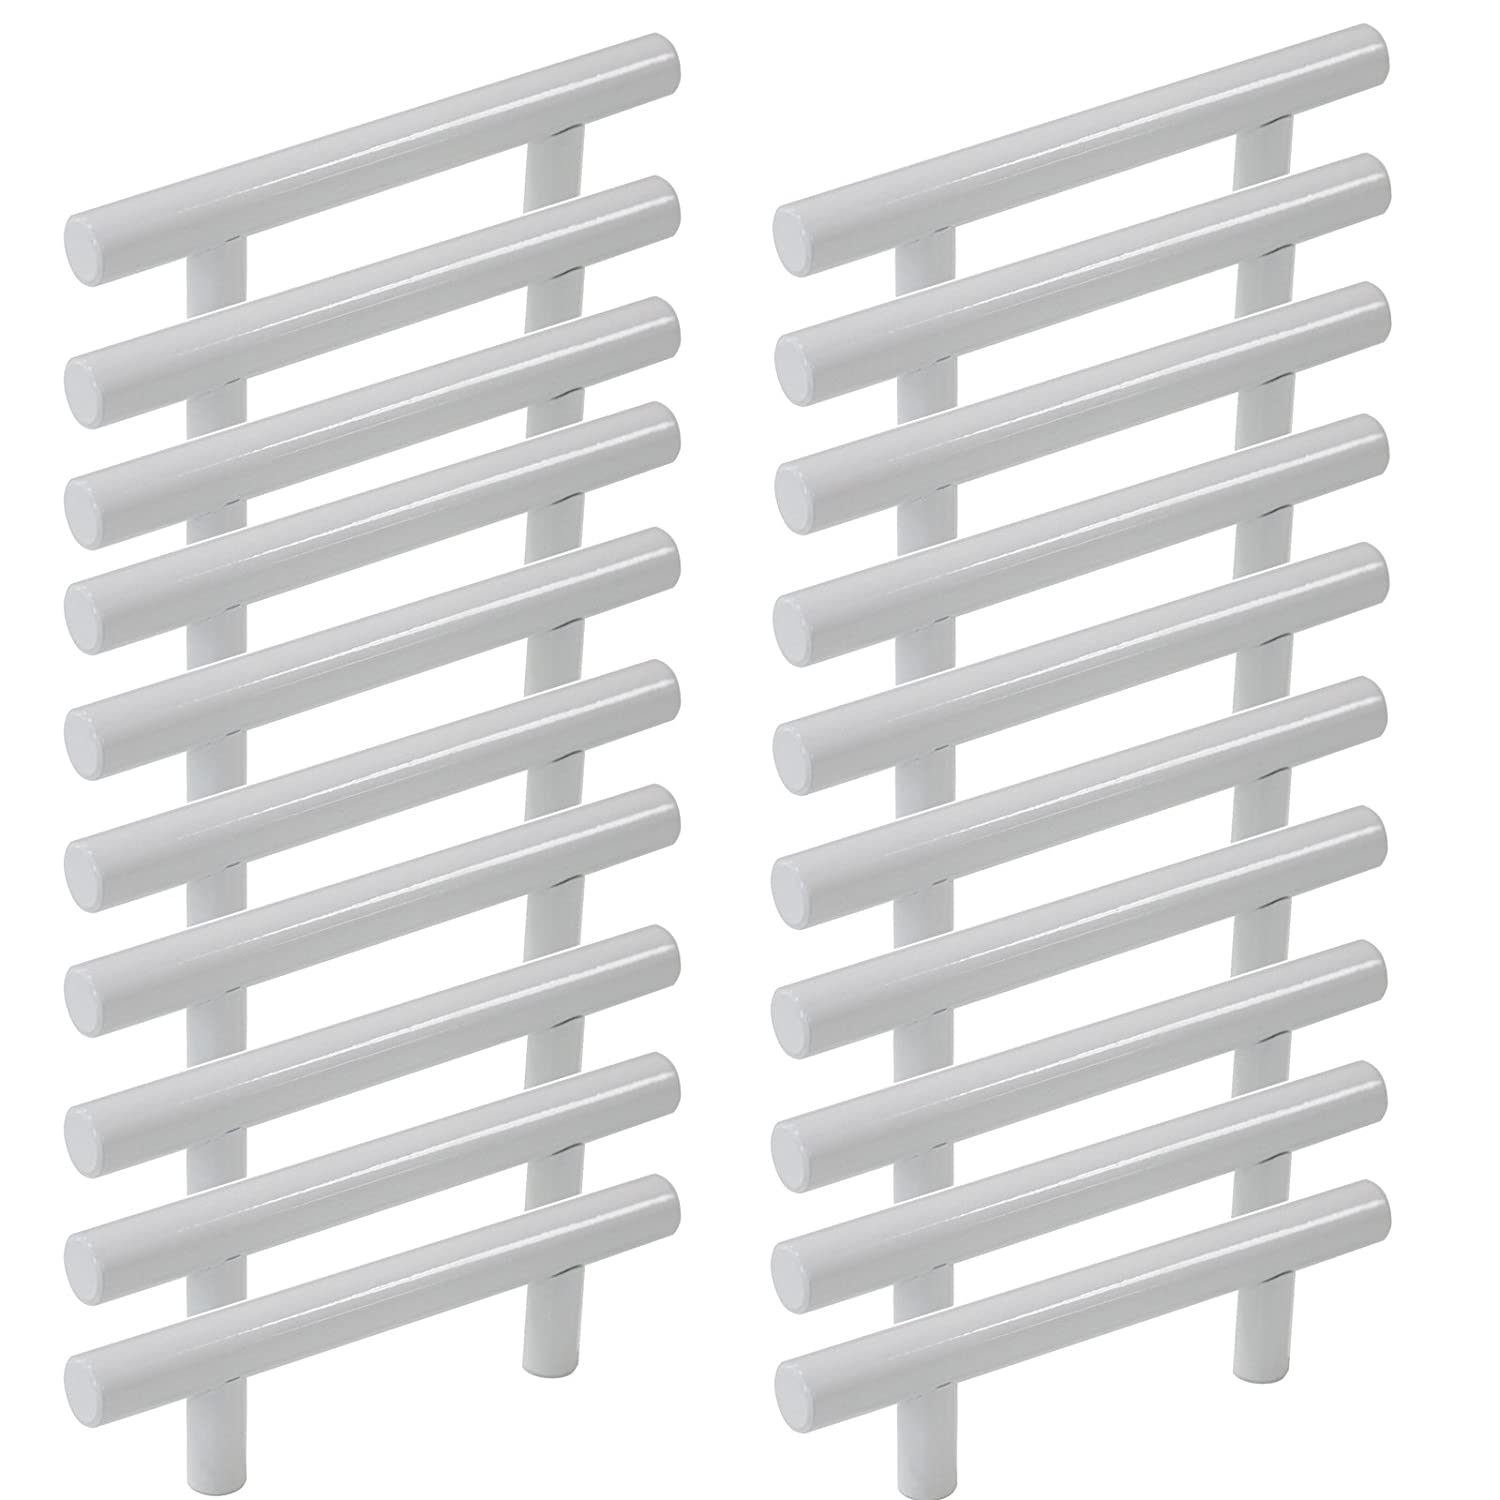 """Probrico 3"""" Hole Centers Modern White Kitchen Bathroom Cabinet Pulls Euro Round T Bar Handles Drawer Dress Pulls Stainless Steel Furniture Hardware-5"""" Overall Length(20Pack)"""